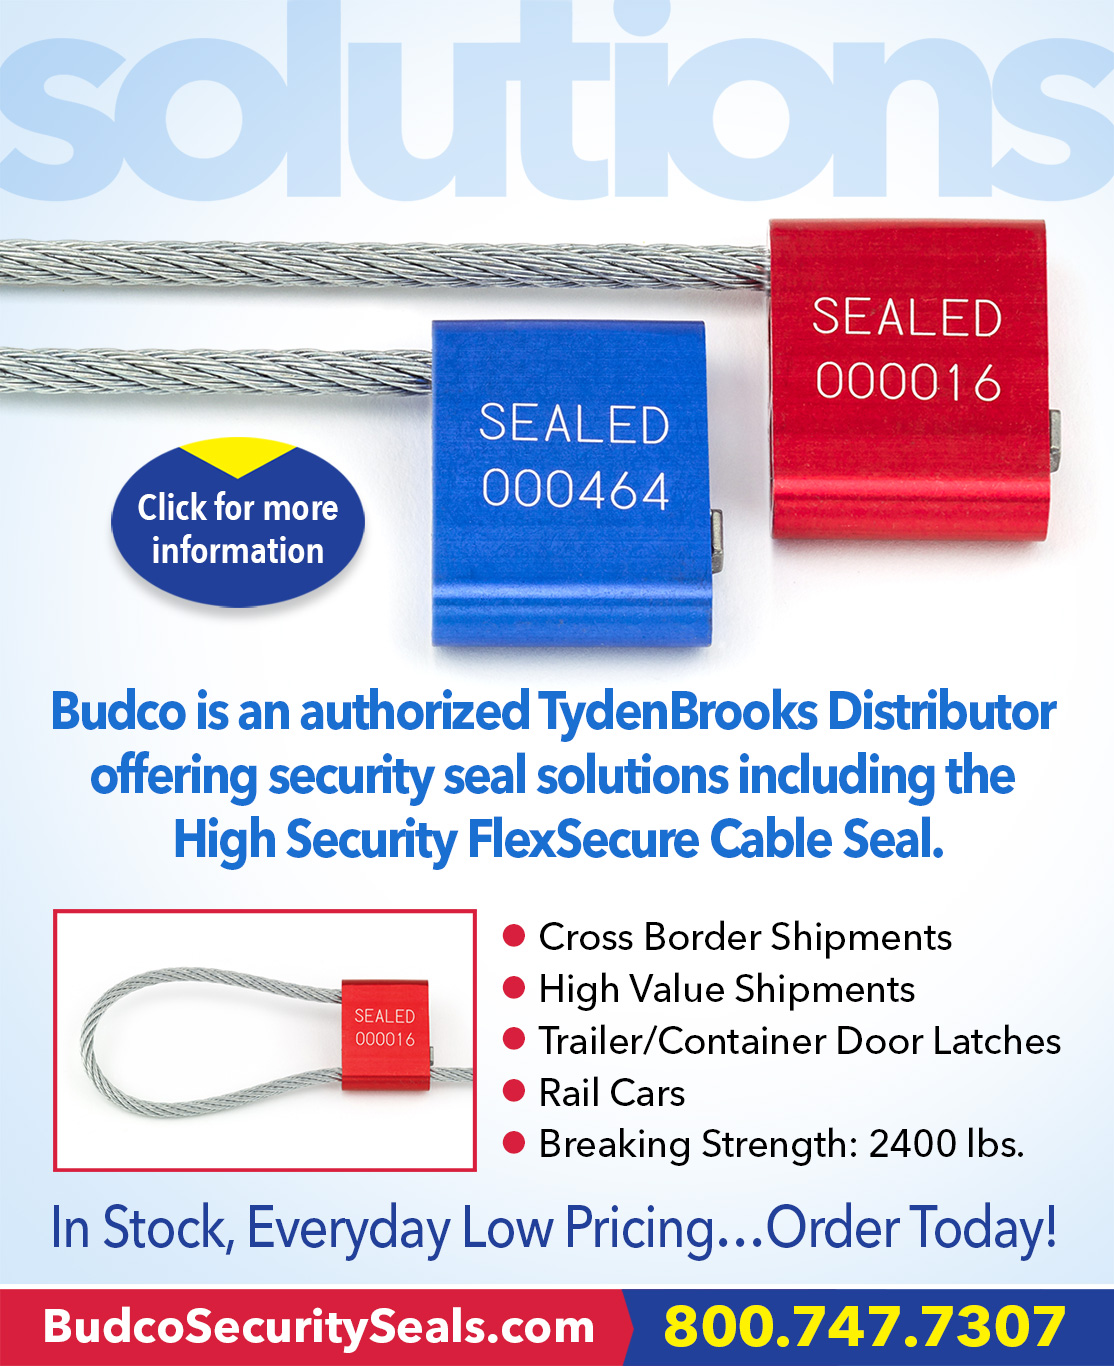 FlexSecure Cable Seals